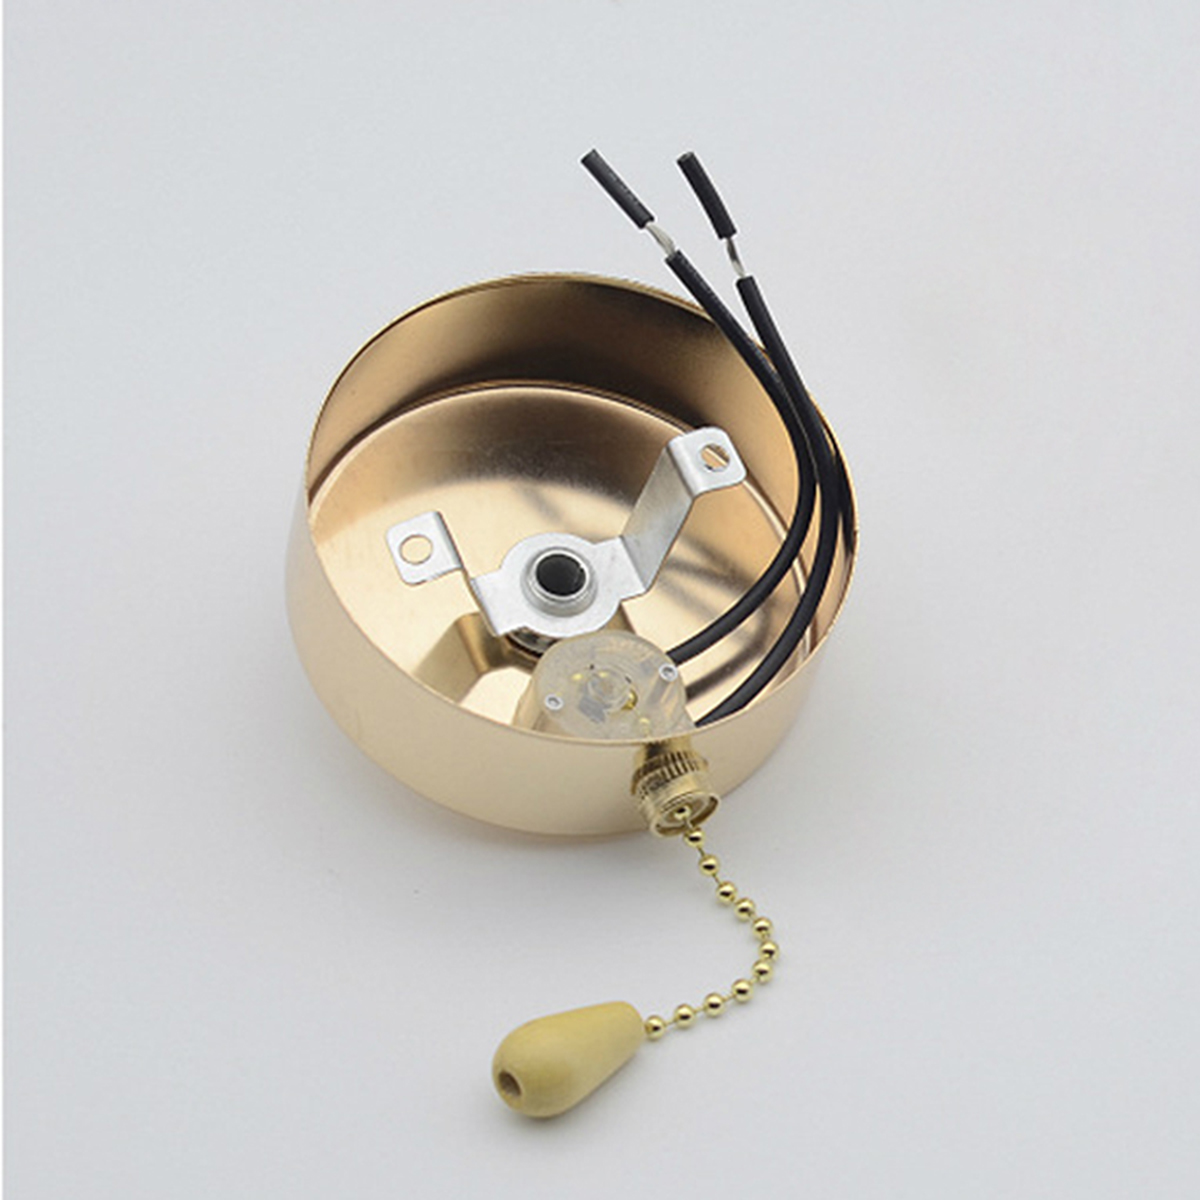 AC220-240V 600W DIY Pull Chain Light Switch for Ceiling Fan Lamp